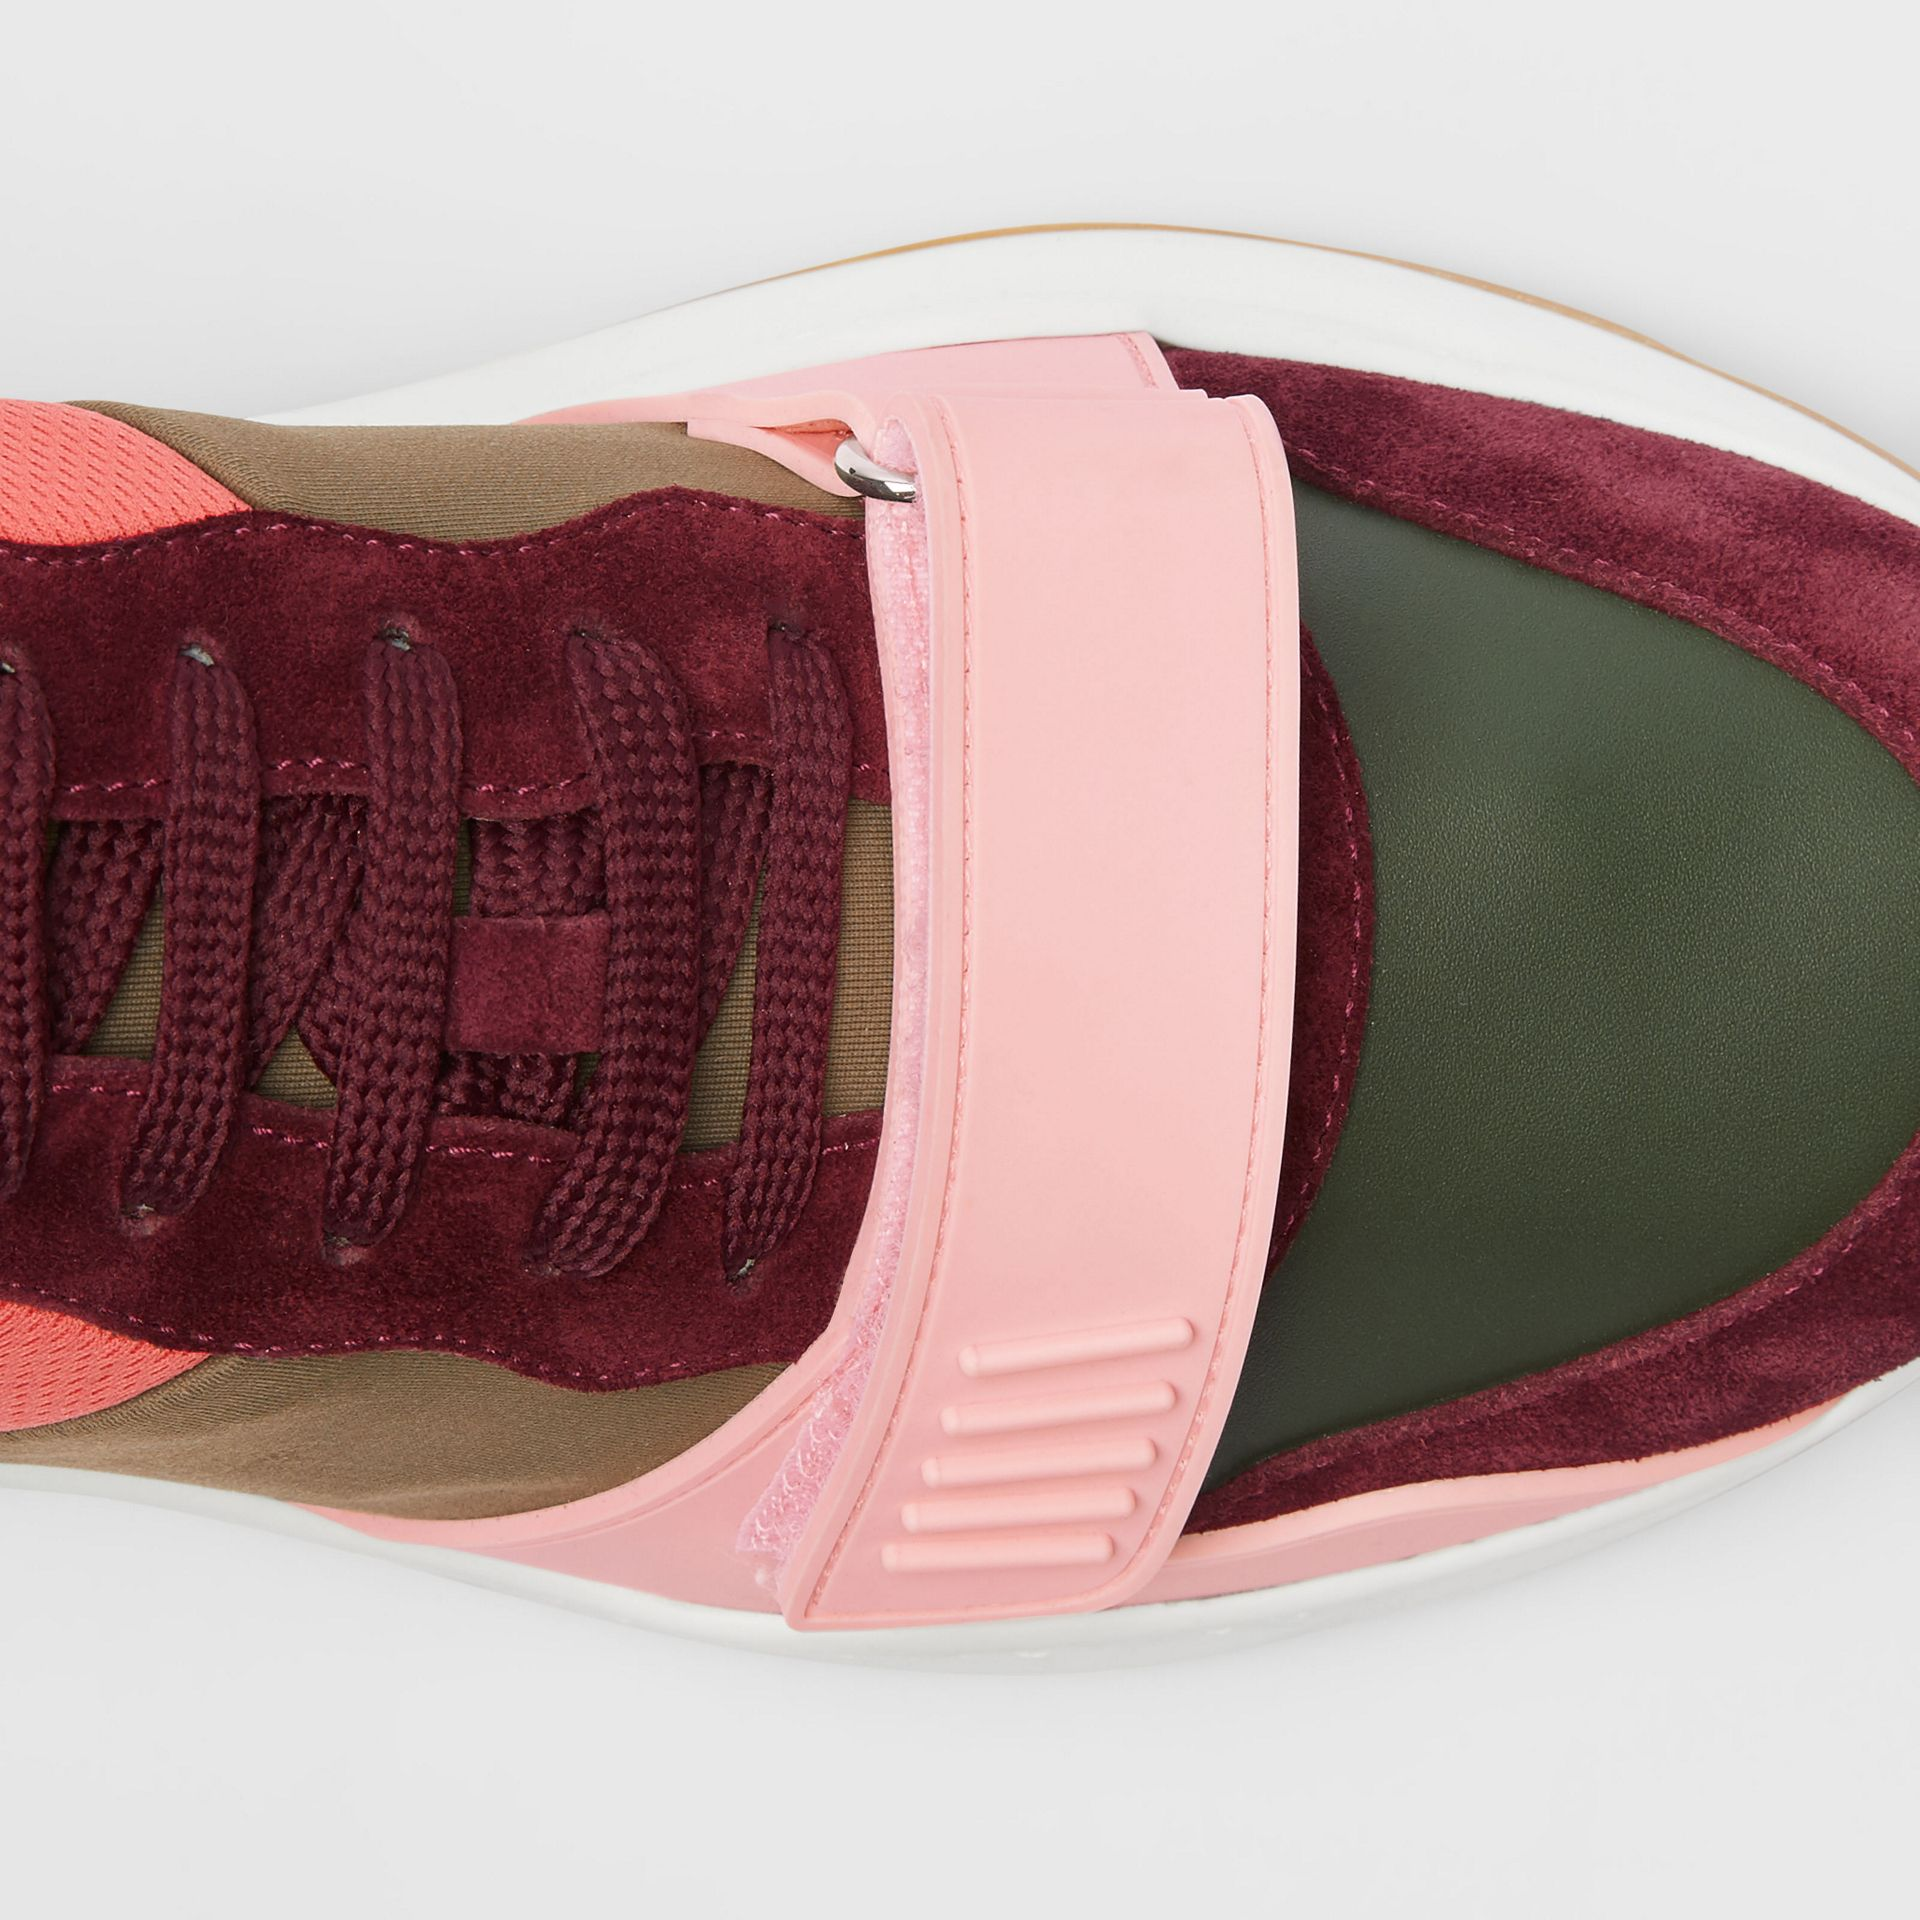 Colour Block Suede and Neoprene Sneakers in Bordeaux/khaki - Men | Burberry - gallery image 1